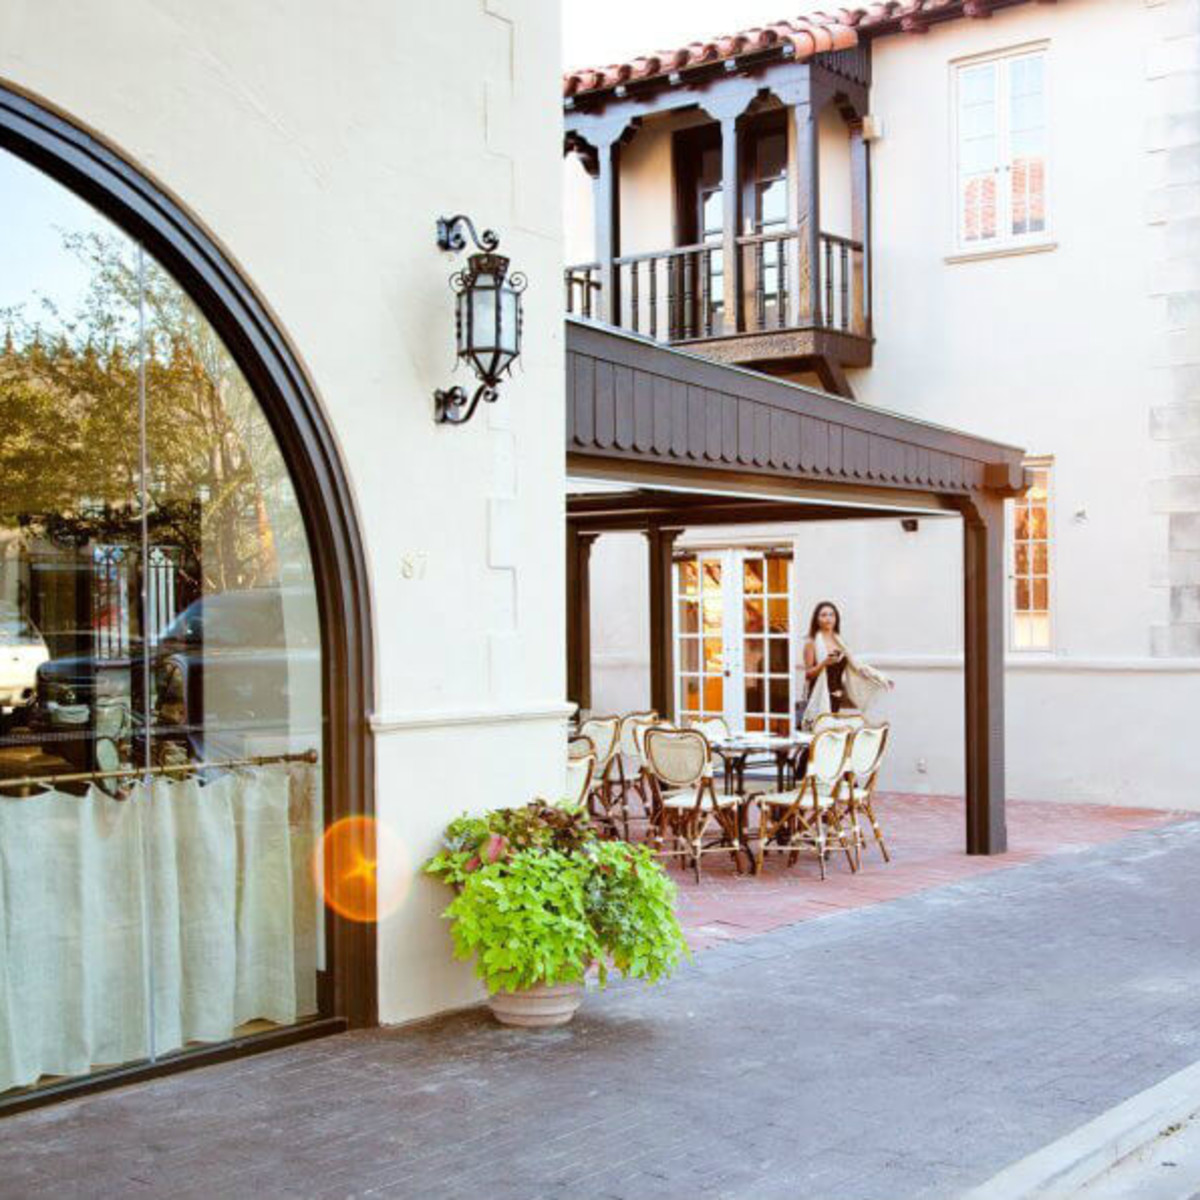 Bistro 31 in Highland Park Village in Dallas